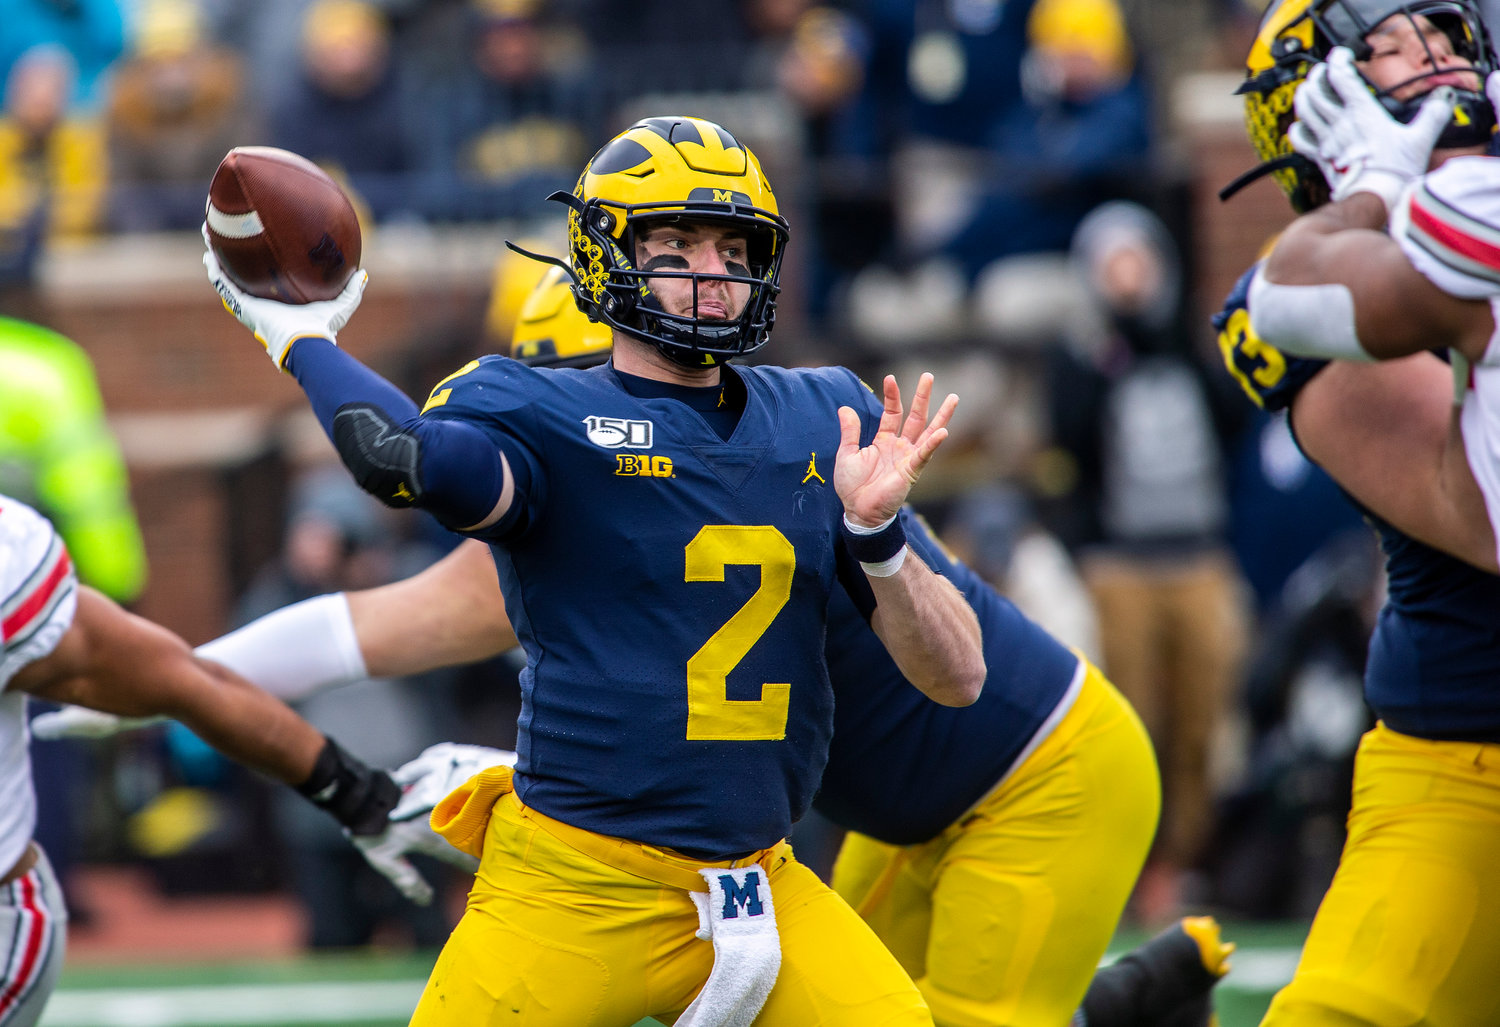 Michigan quarterback Shea Patterson (2) throws a pass in the first quarter of an NCAA college football game against Ohio State in Ann Arbor, Mich., Saturday, Nov. 30, 2019. (AP Photo/Tony Ding)